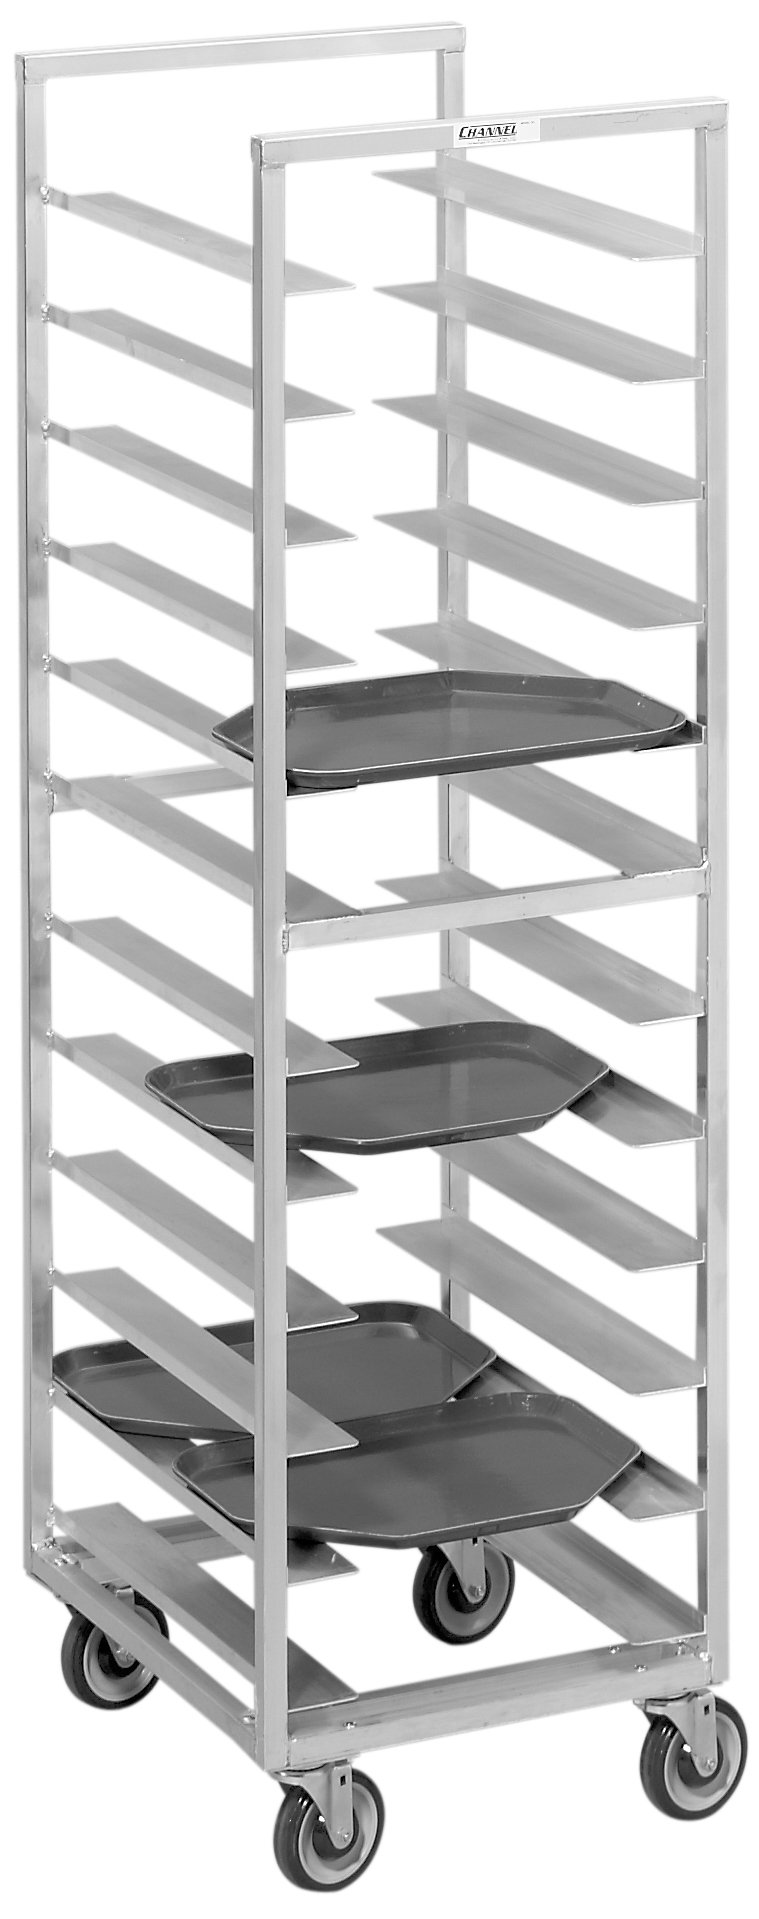 Channel Manufacturing T437A 40 Tray Bottom Load Aluminum Trapezoidal Cafeteria Tray Rack - Assembled